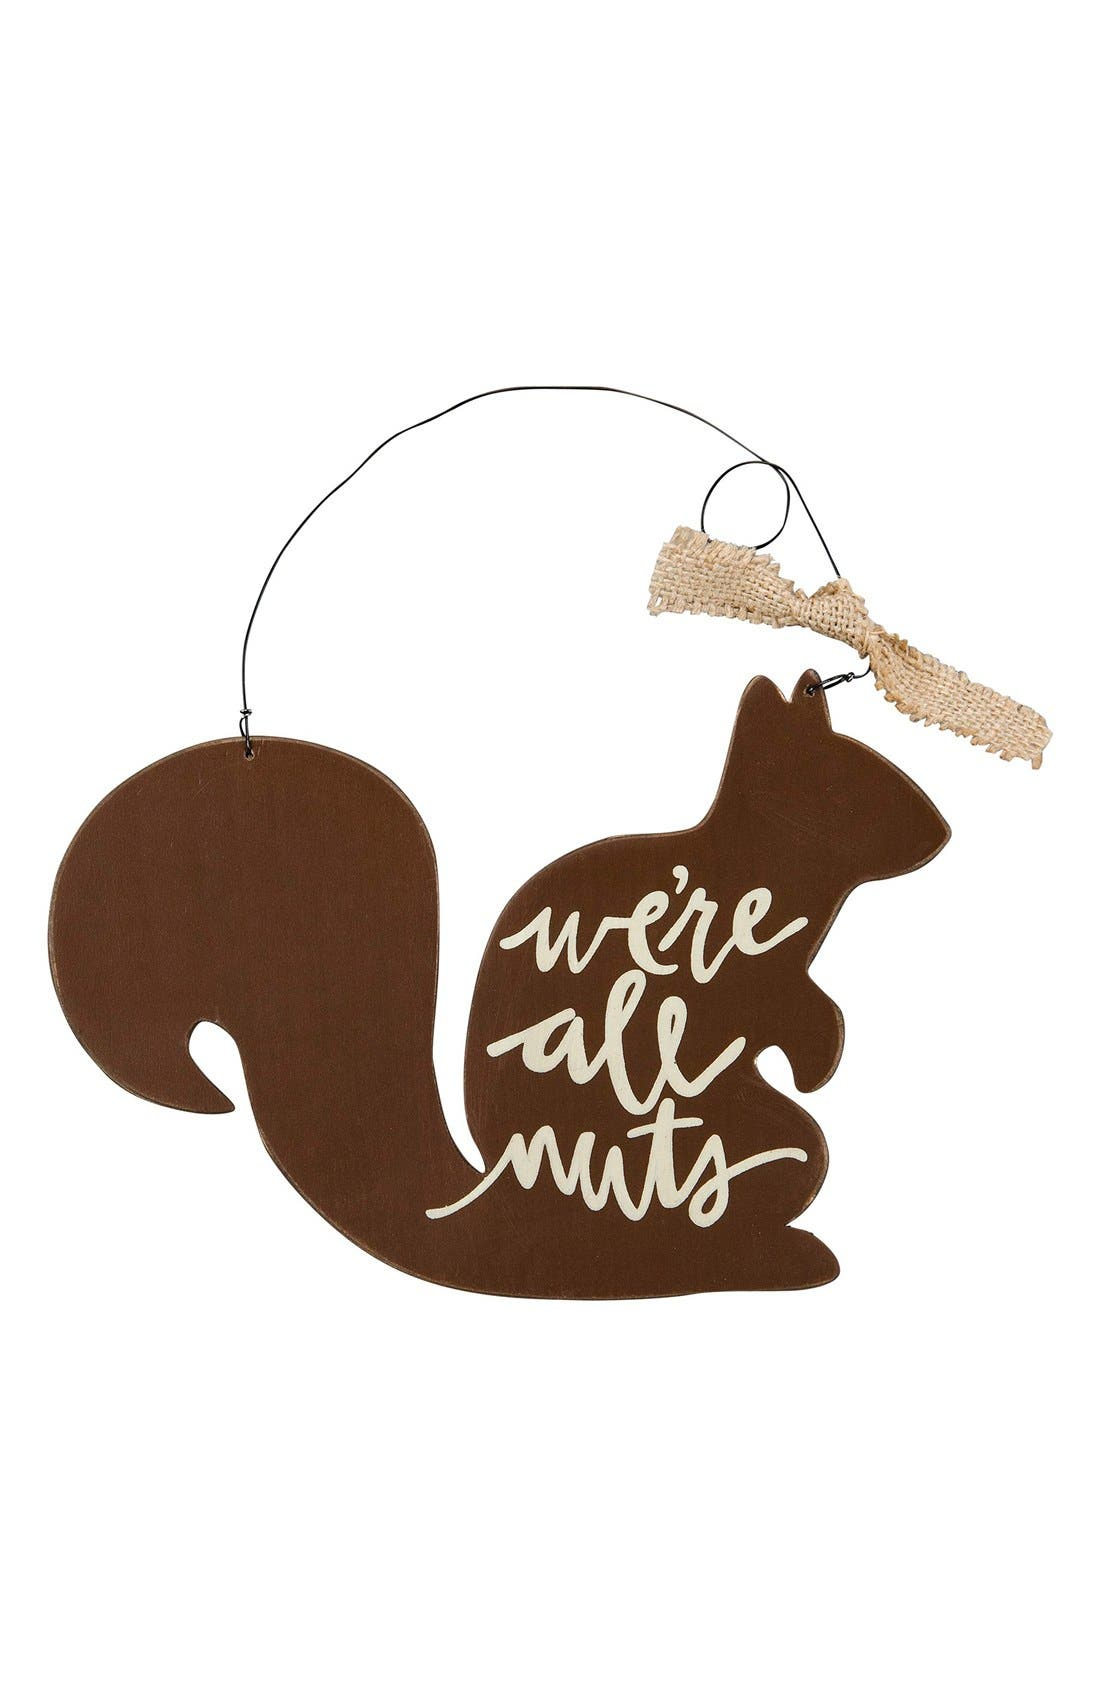 'We're All Nuts' Wood Ornament,                         Main,                         color, 200